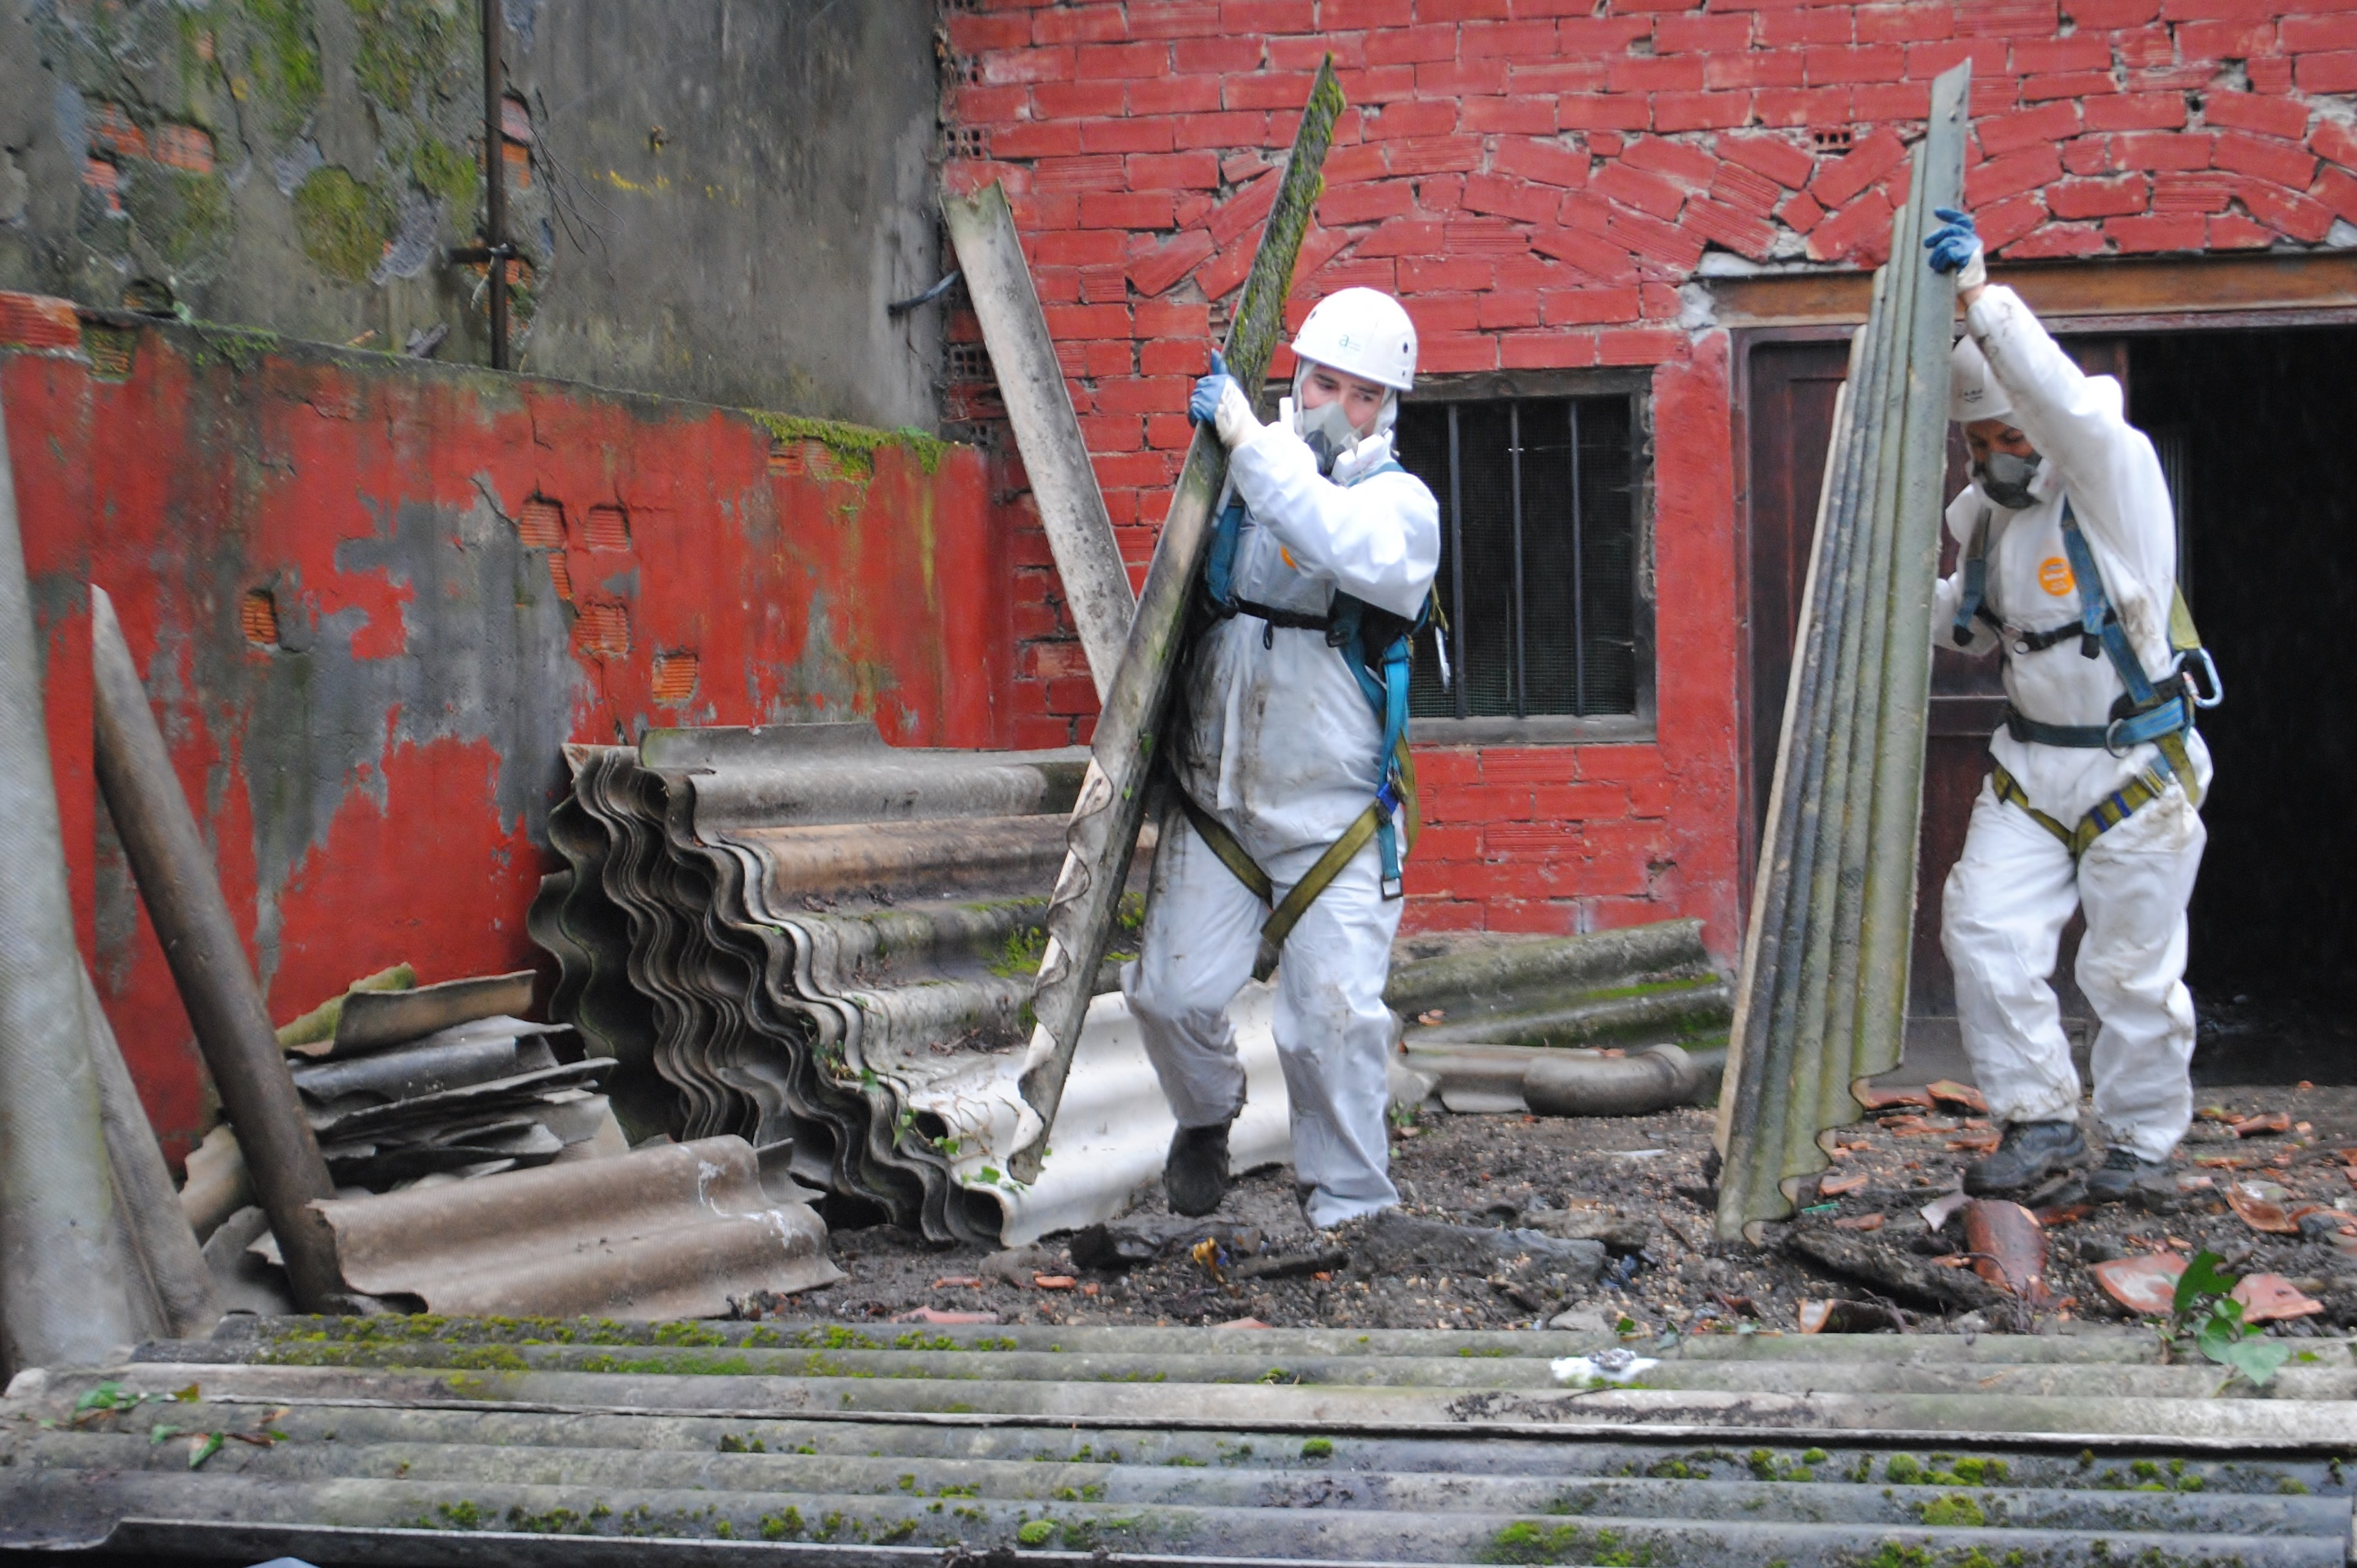 HSE Launches Surprise Construction Site Inspections Which Focus on 'Slow Killers'